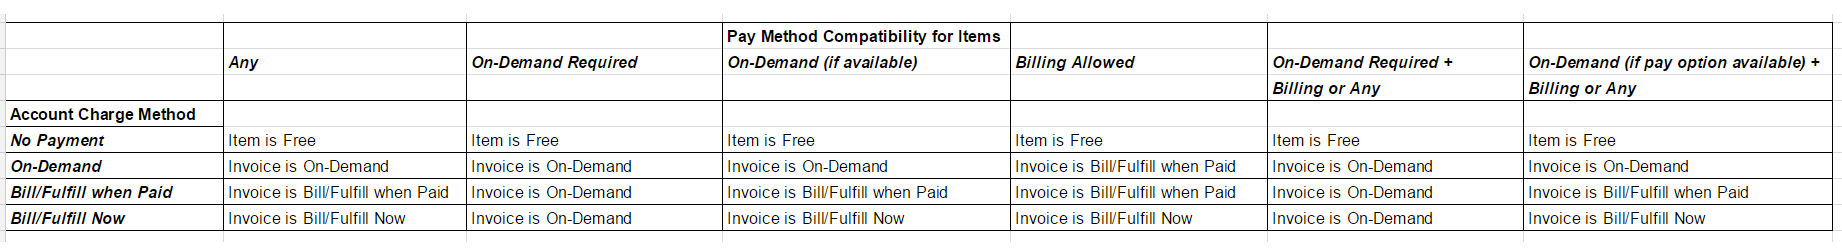 Pay Method Compatibility Chart.png